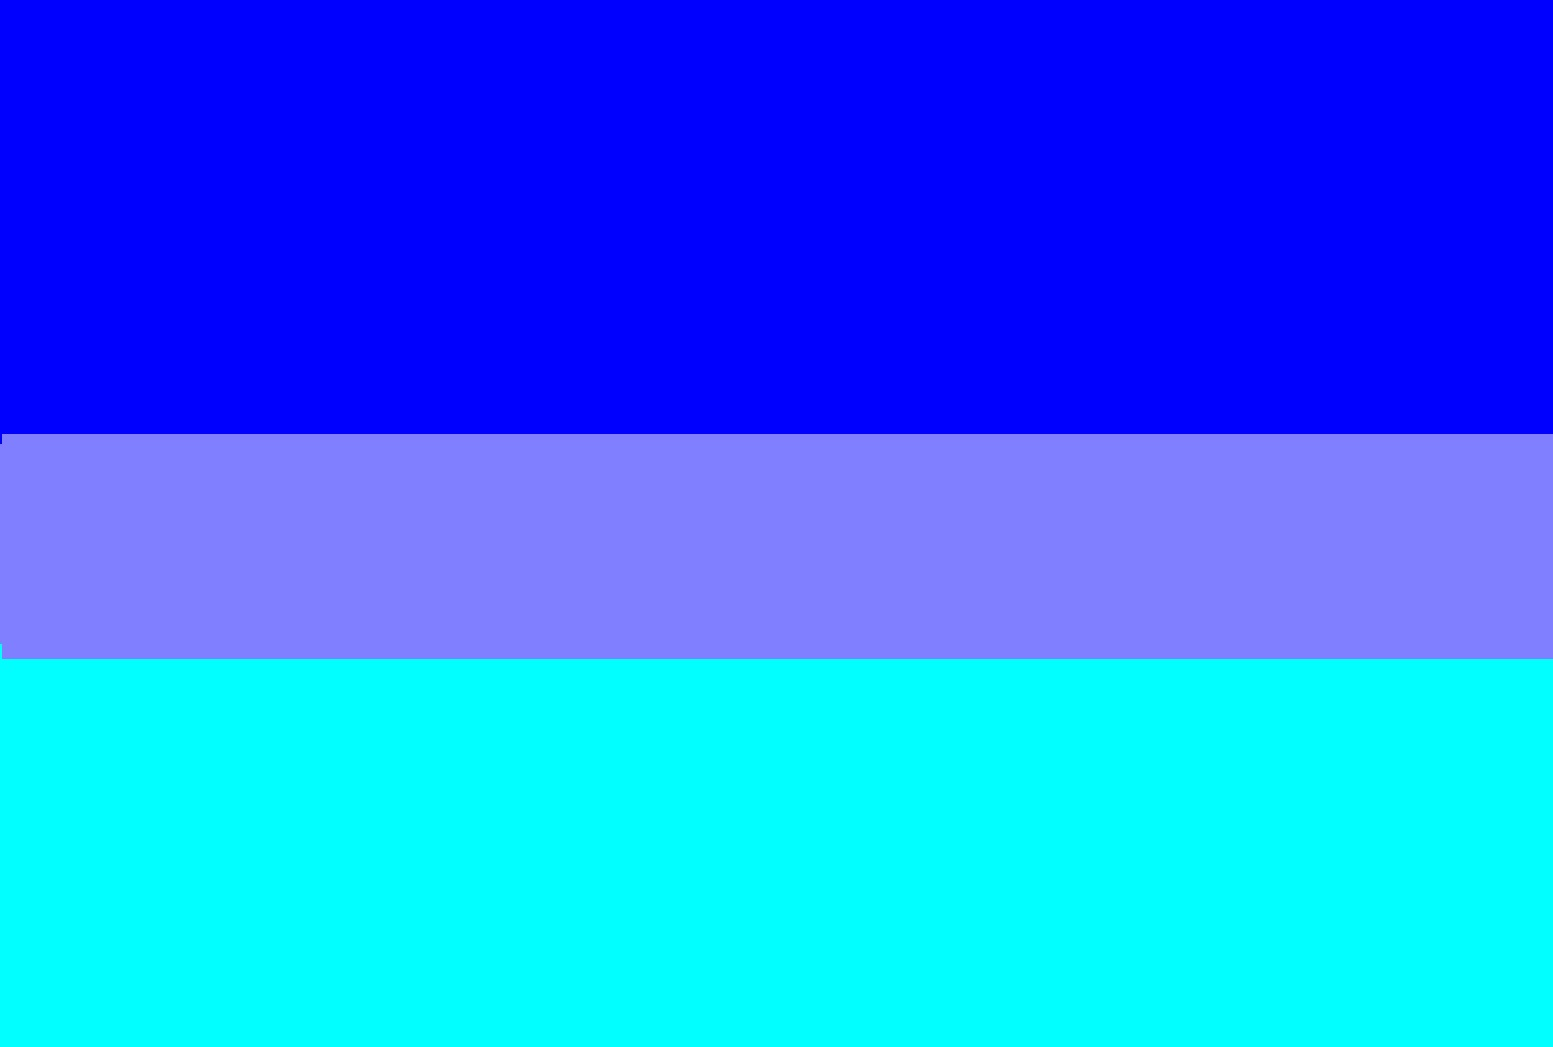 Bisexual Pride Flag Backgrounds on Wallpapers Vista